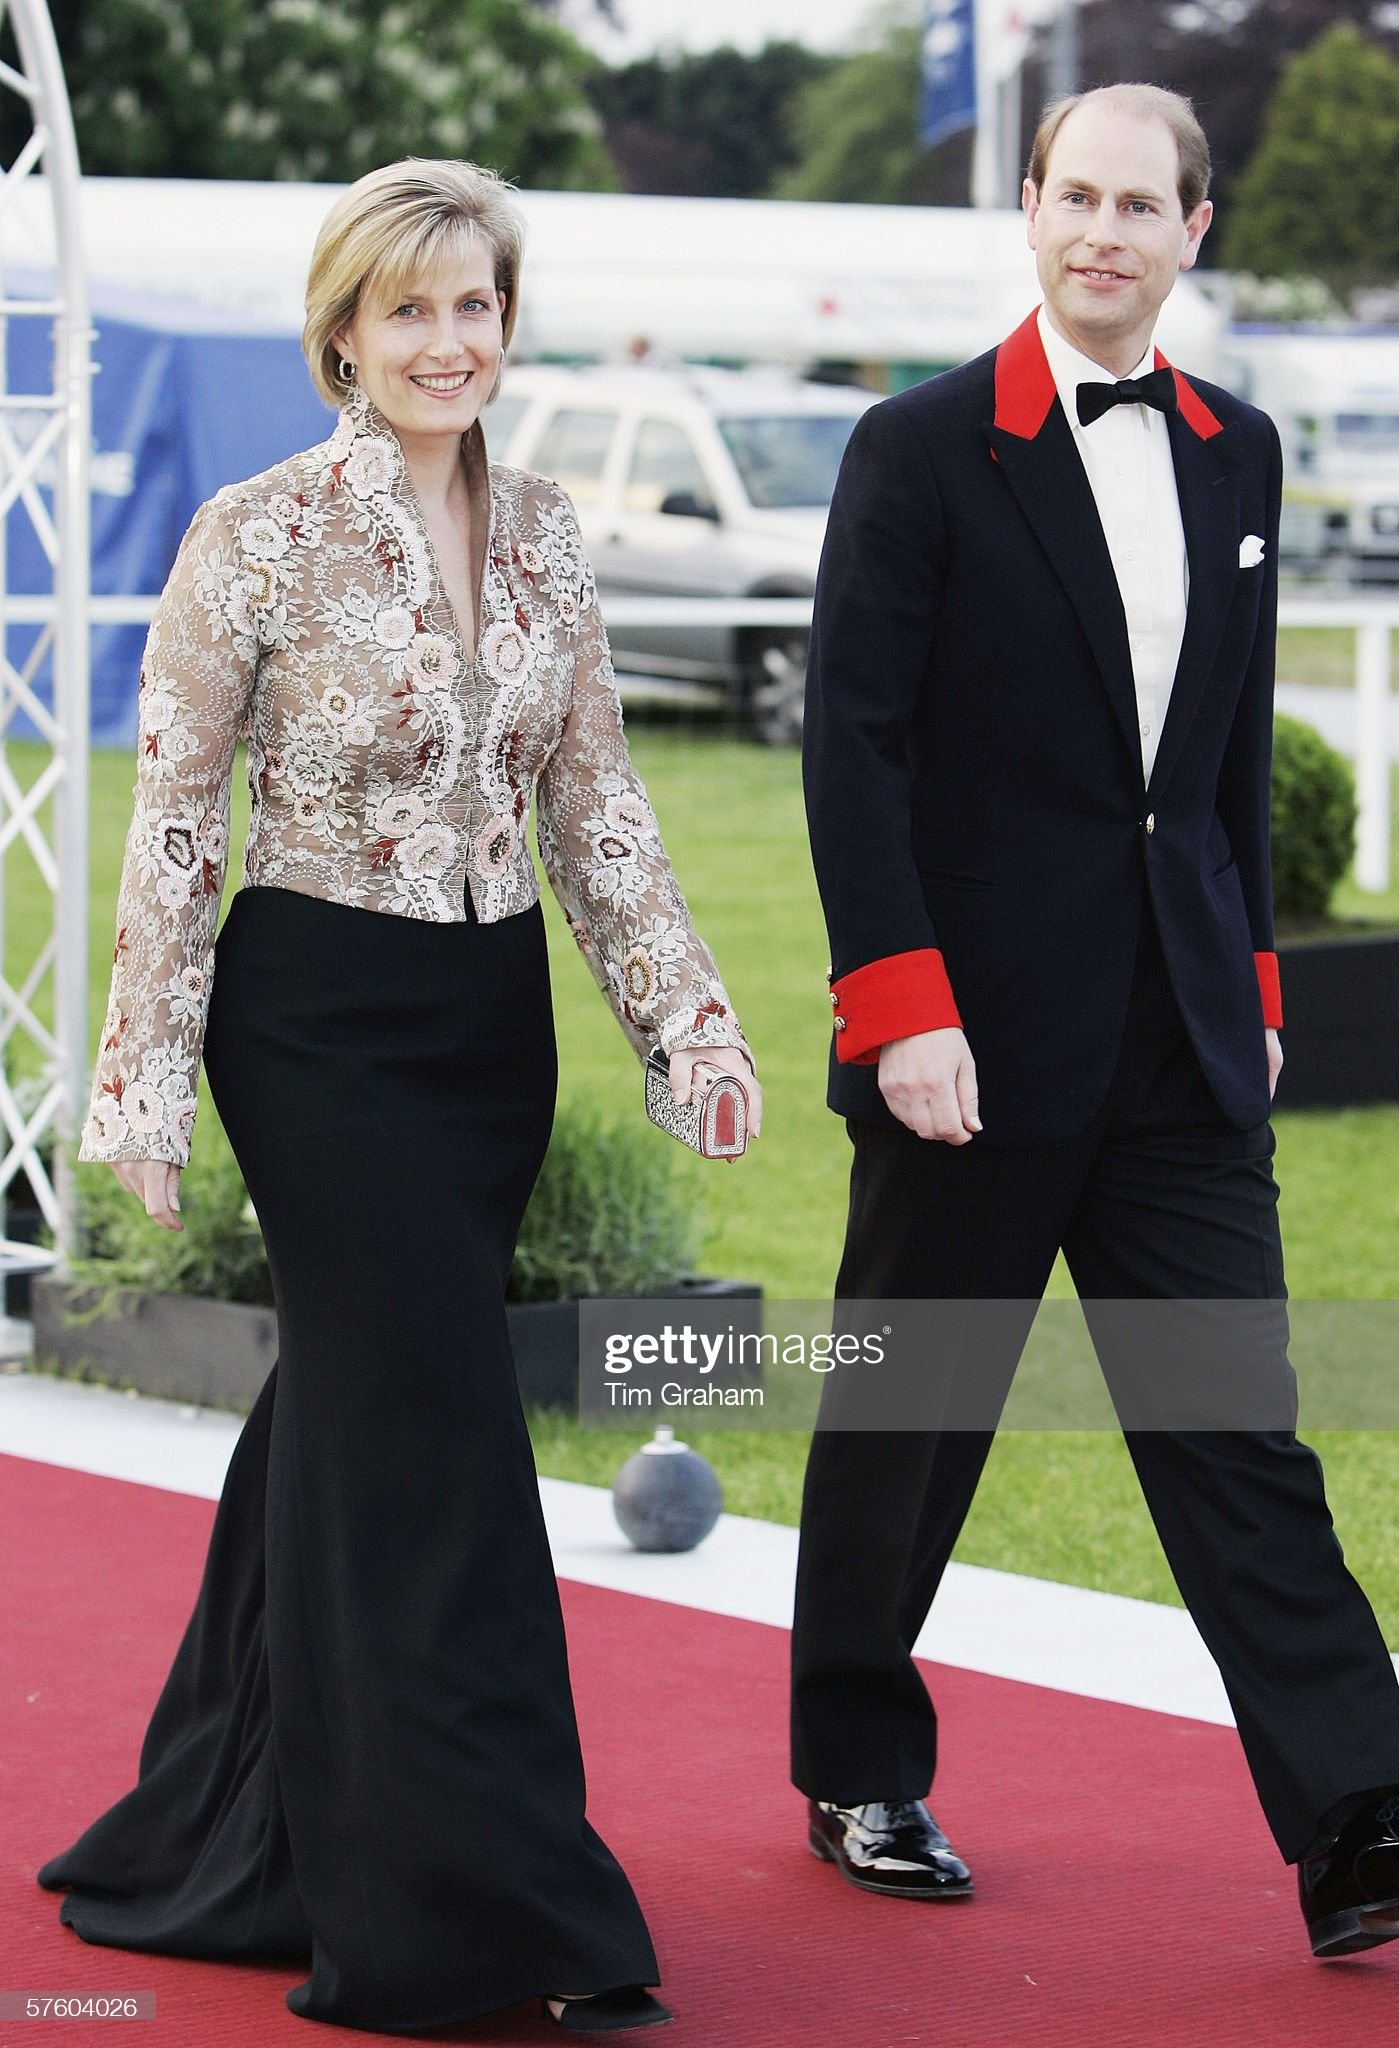 Prince Edward & Sophie at Horse Show Dinner : News Photo